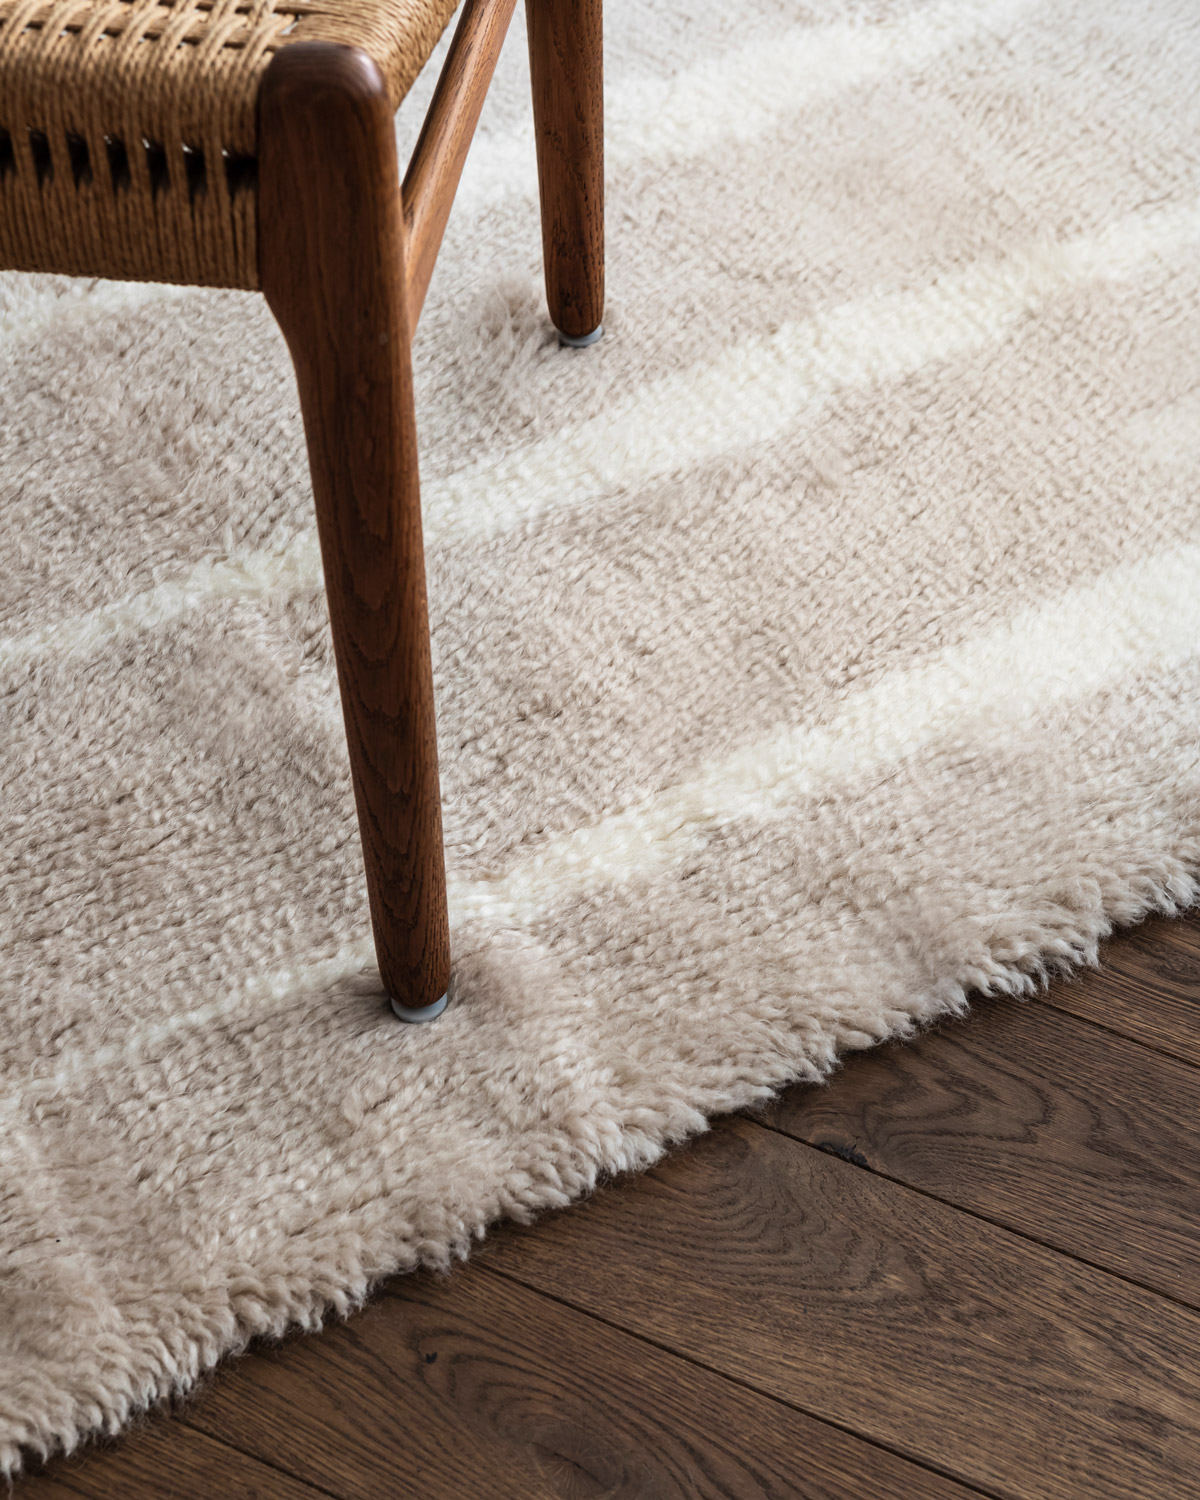 Close-up of the shaggy Fjord rug in the color Pale sand, showing the edge and texture of the rug.